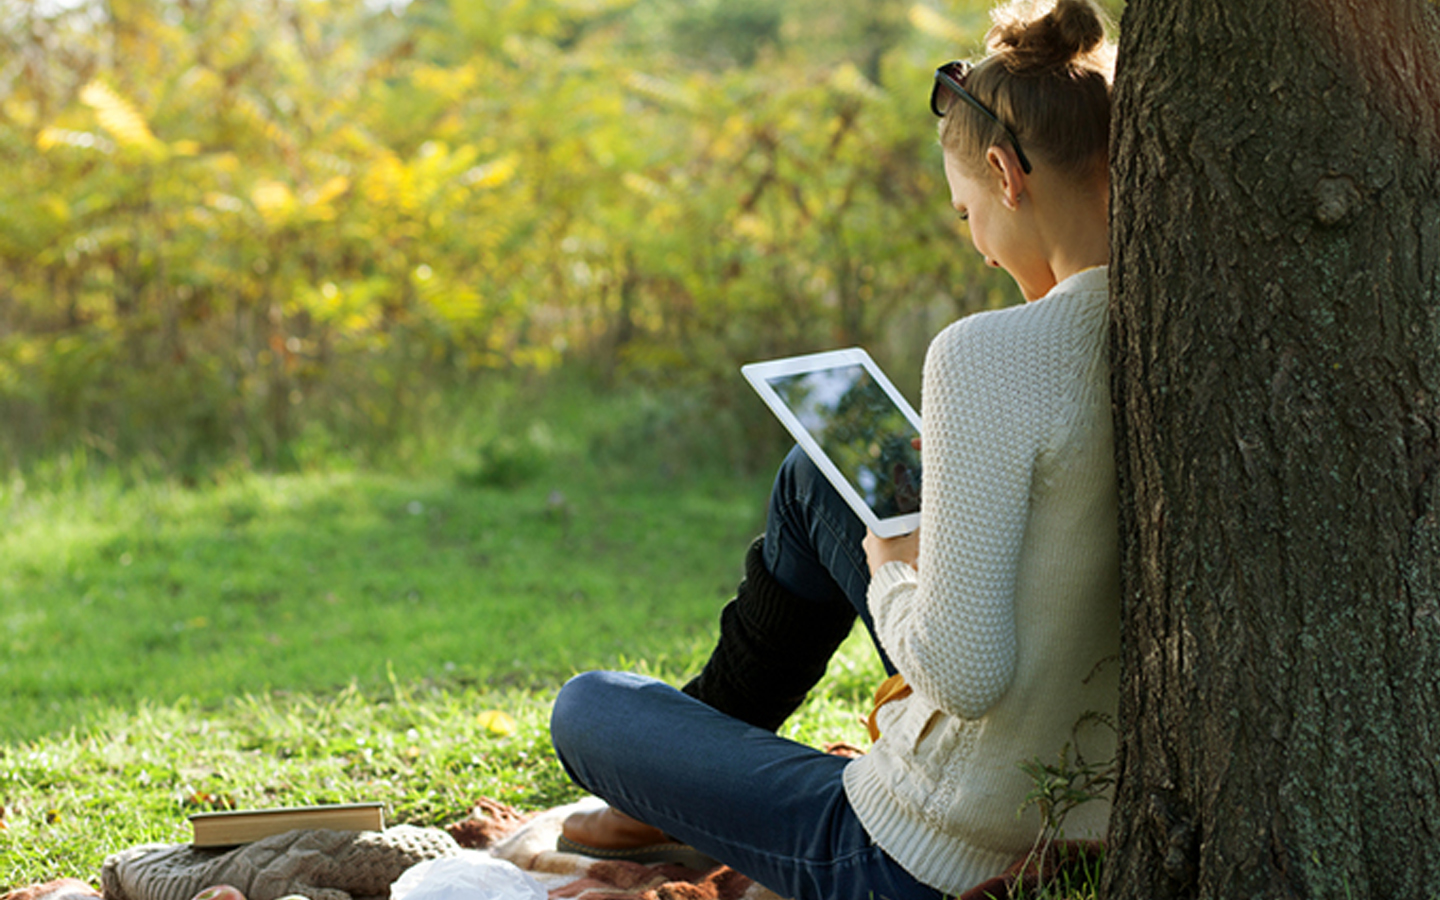 A woman reads from an iPad in the park